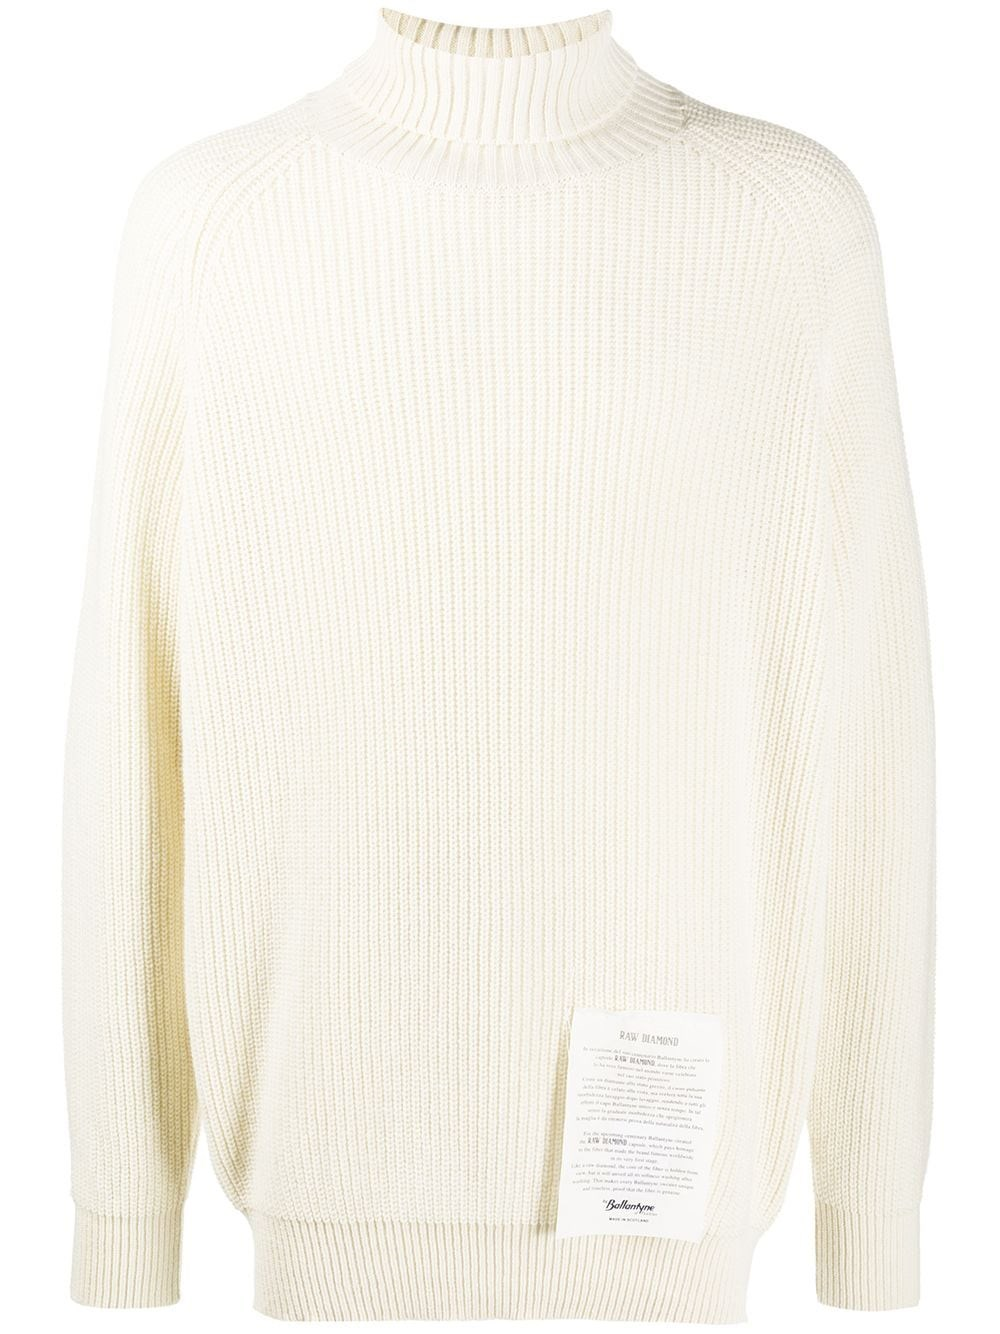 RAW DIAMOND BY BALLANTYNE Roll-Neck Cashmere Jumper